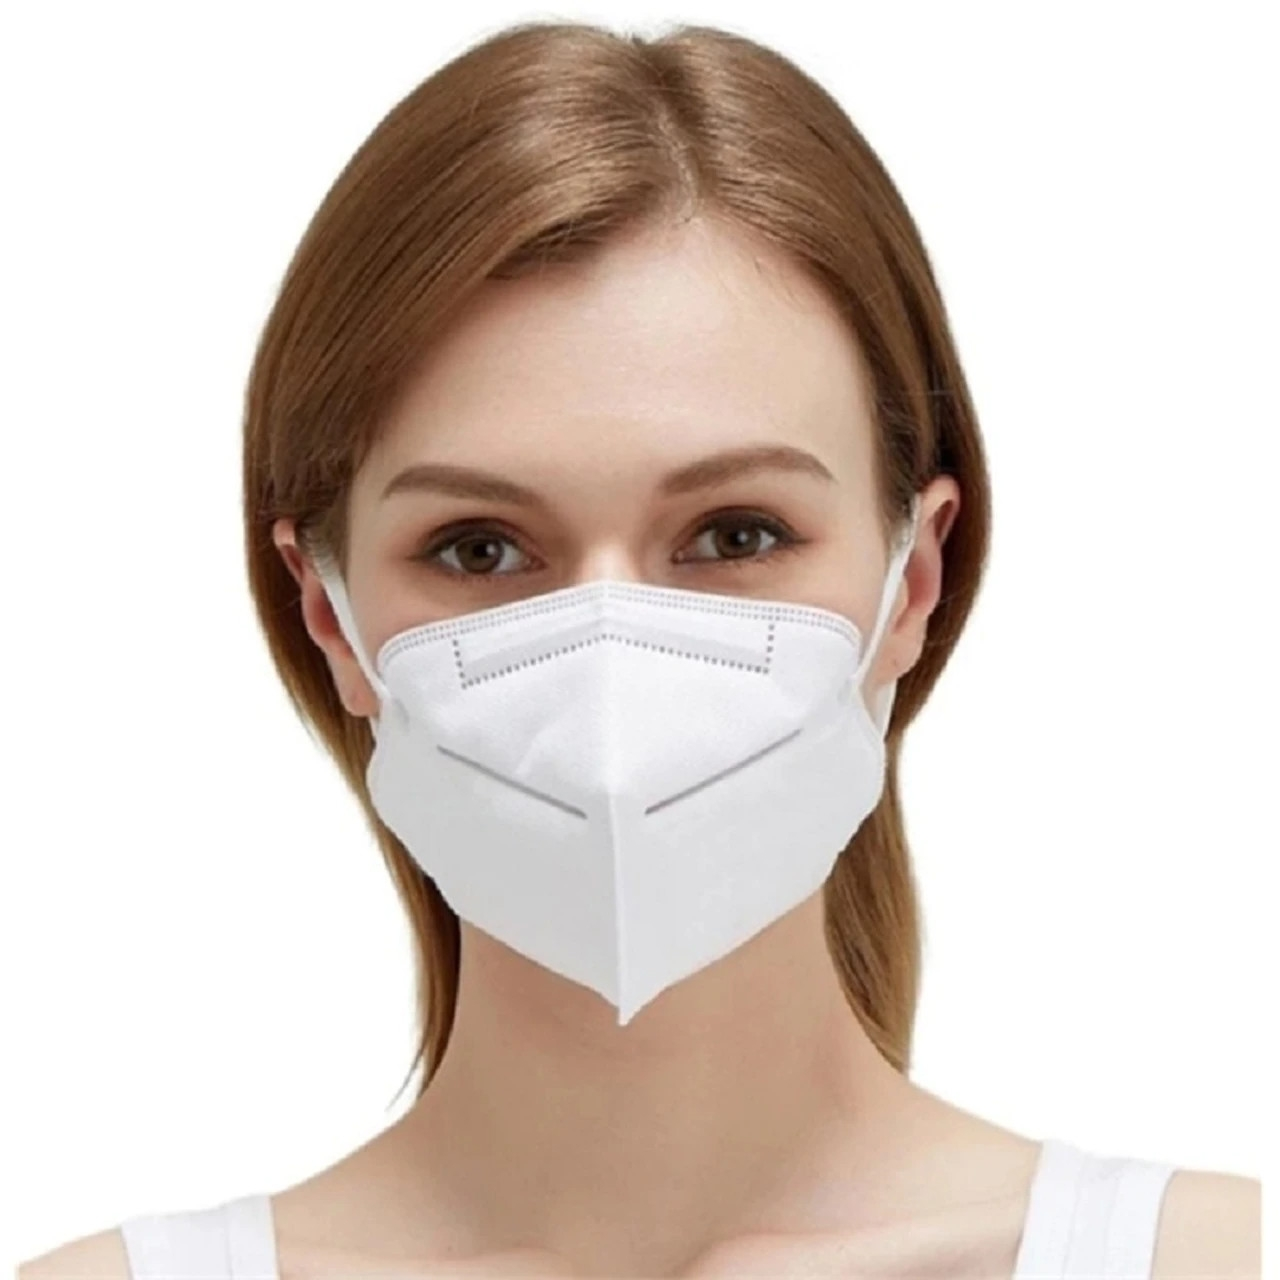 Wholesale Reusable Kn90 FFP2 Non Medical 5 Layers Dustproof Face Mask For Daily Use from china suppliers